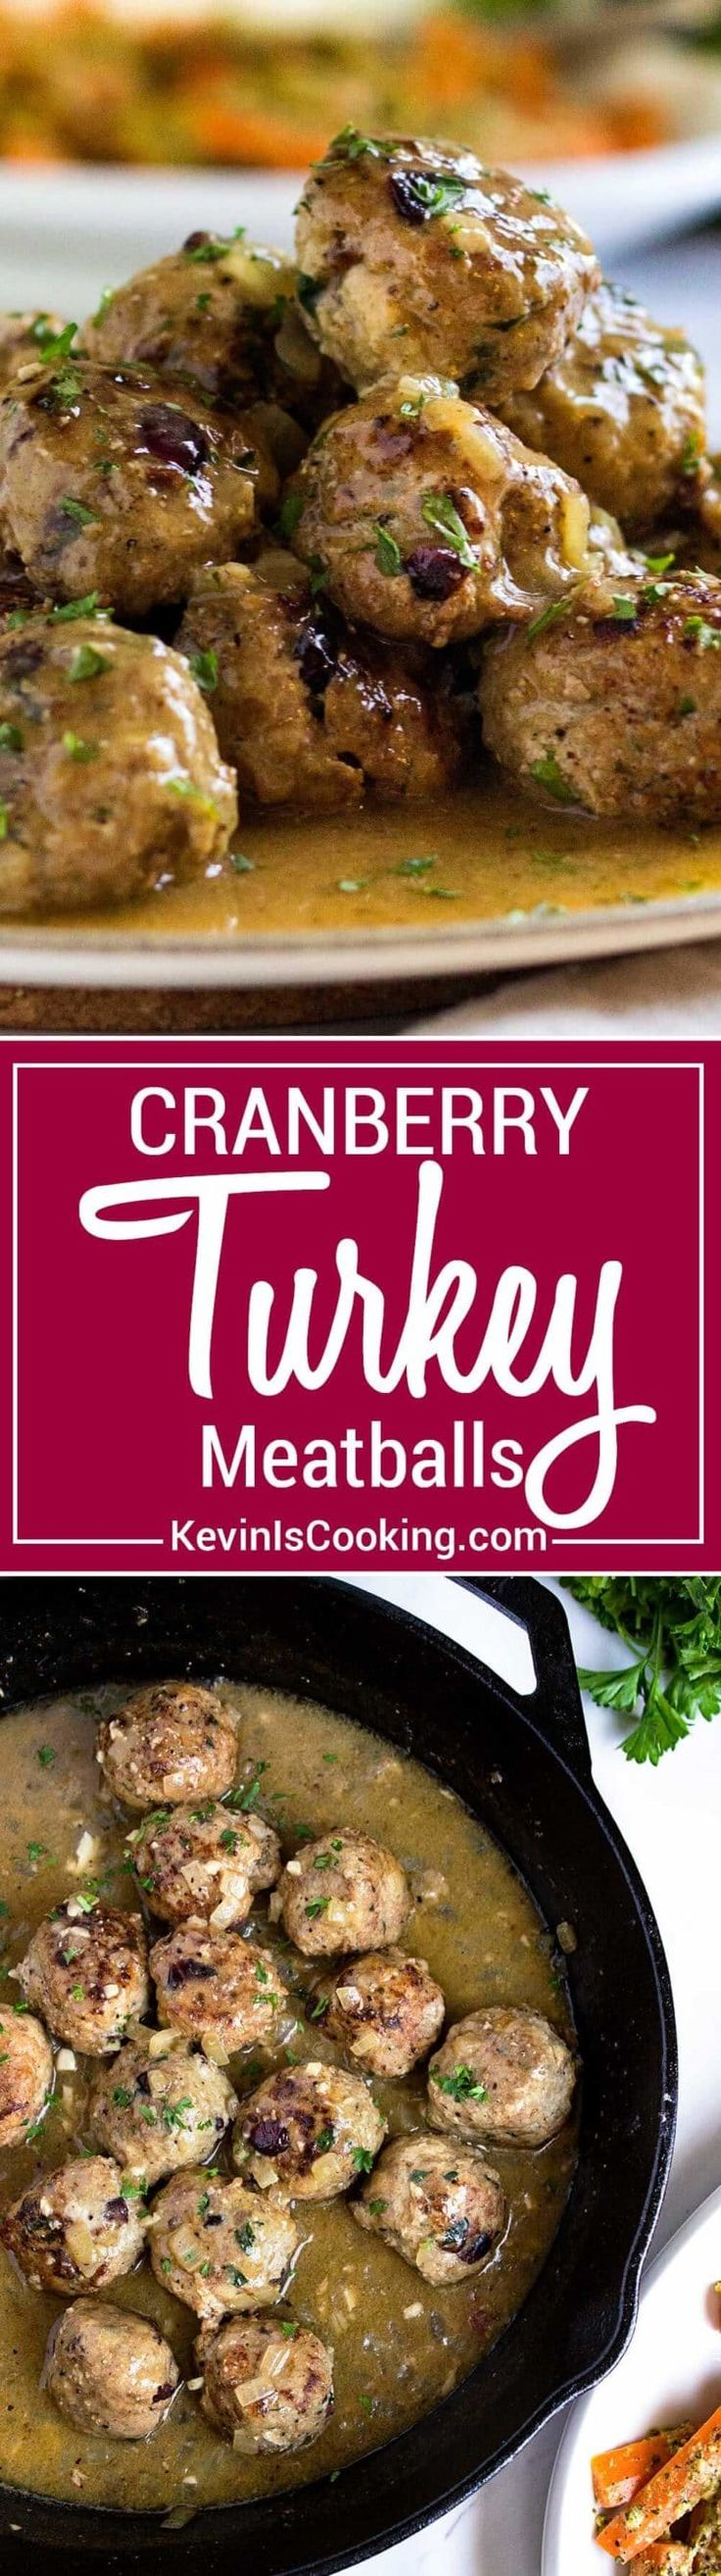 Super moist, tender and packed with flavor, these Cranberry Turkey Meatballs are great any time of year! Serve as an appetizer or with a side for a meal. via @keviniscooking